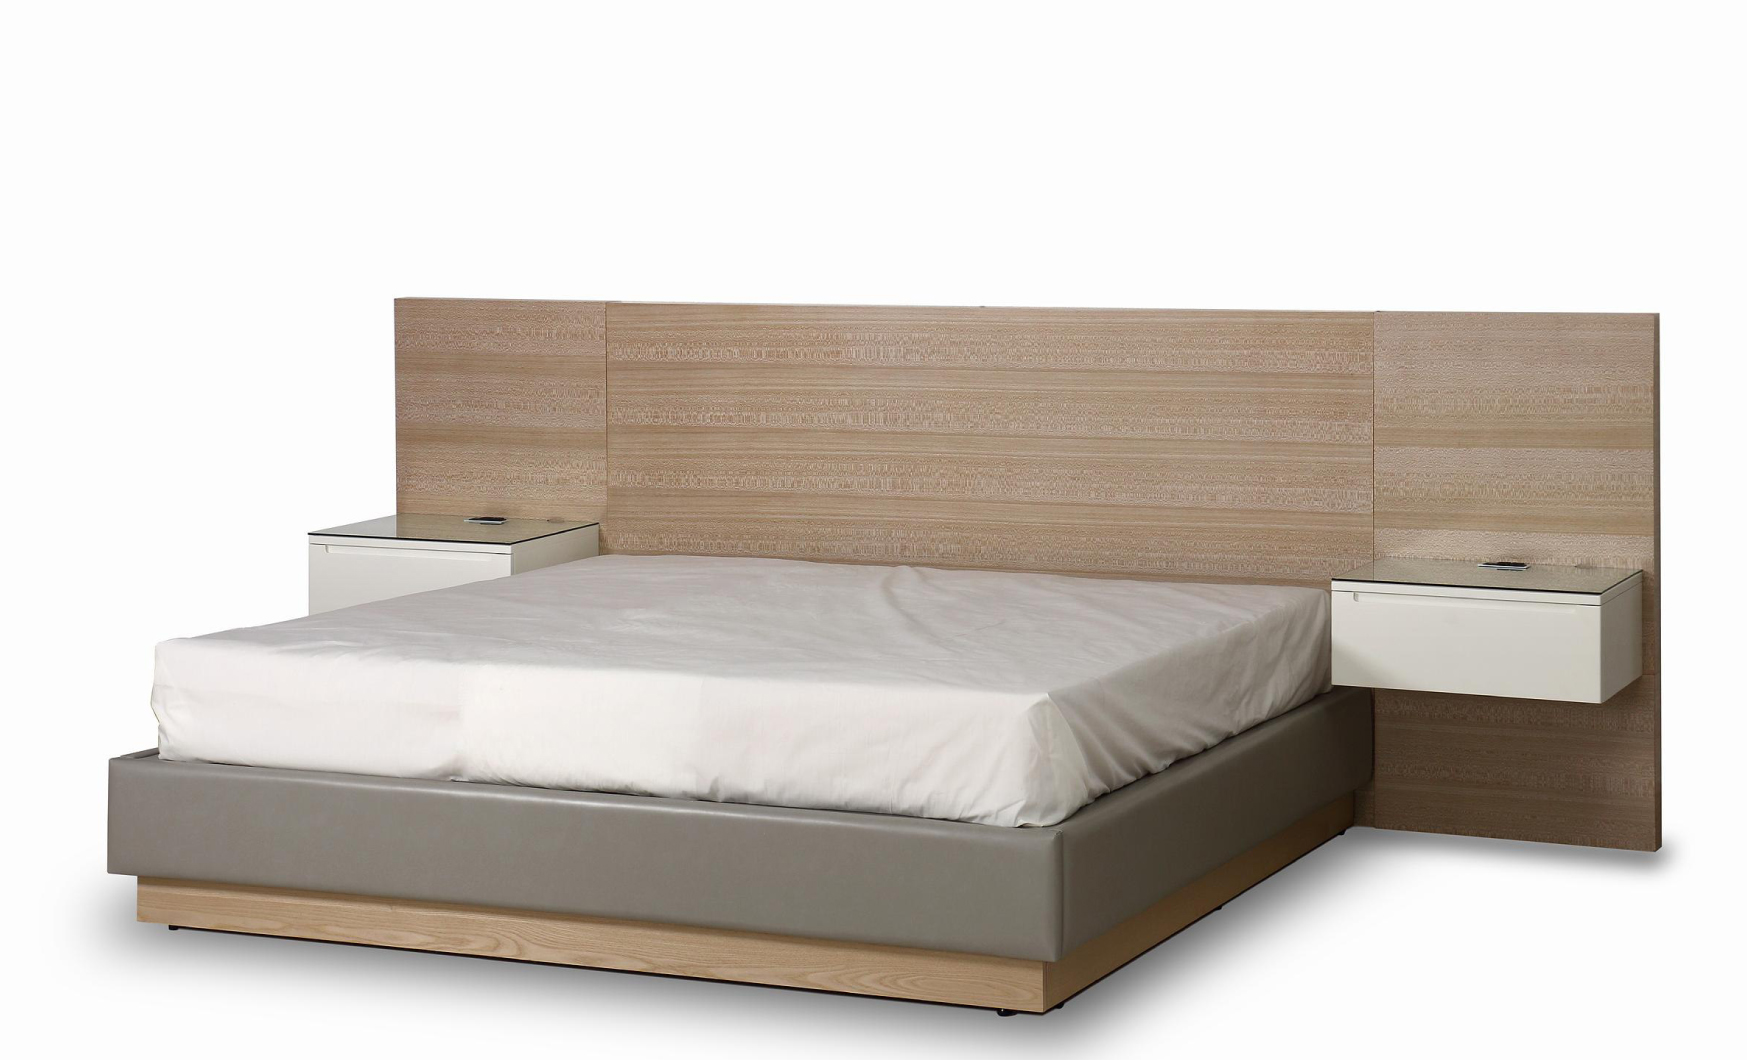 HEADBOARD BED BASE HB-401